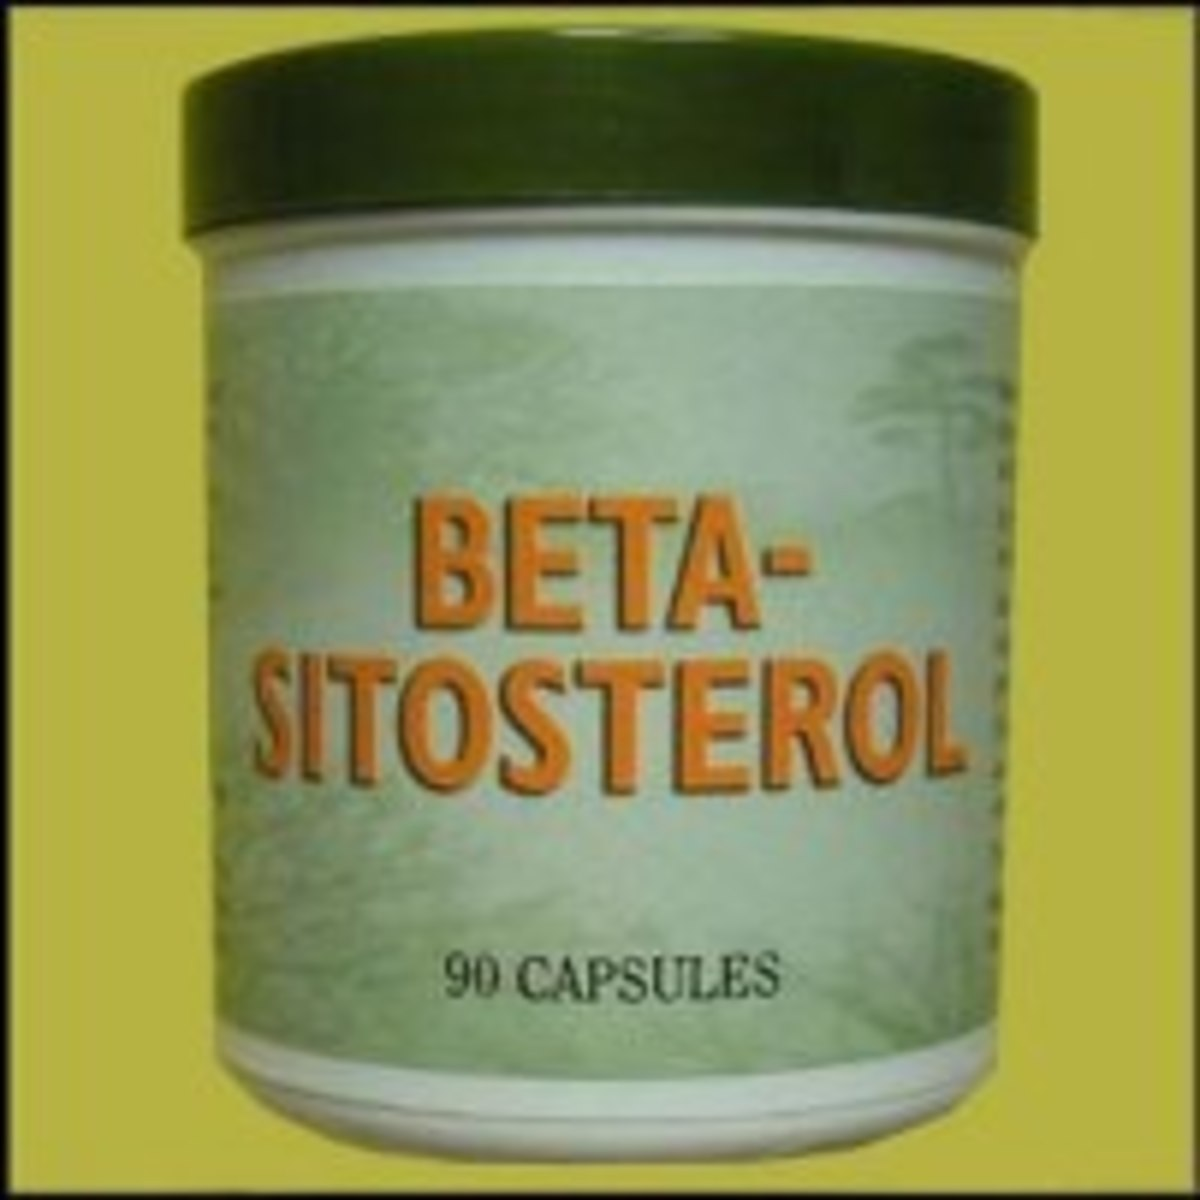 Beta-sitosterol is made from extracts of cocoa and microalgae